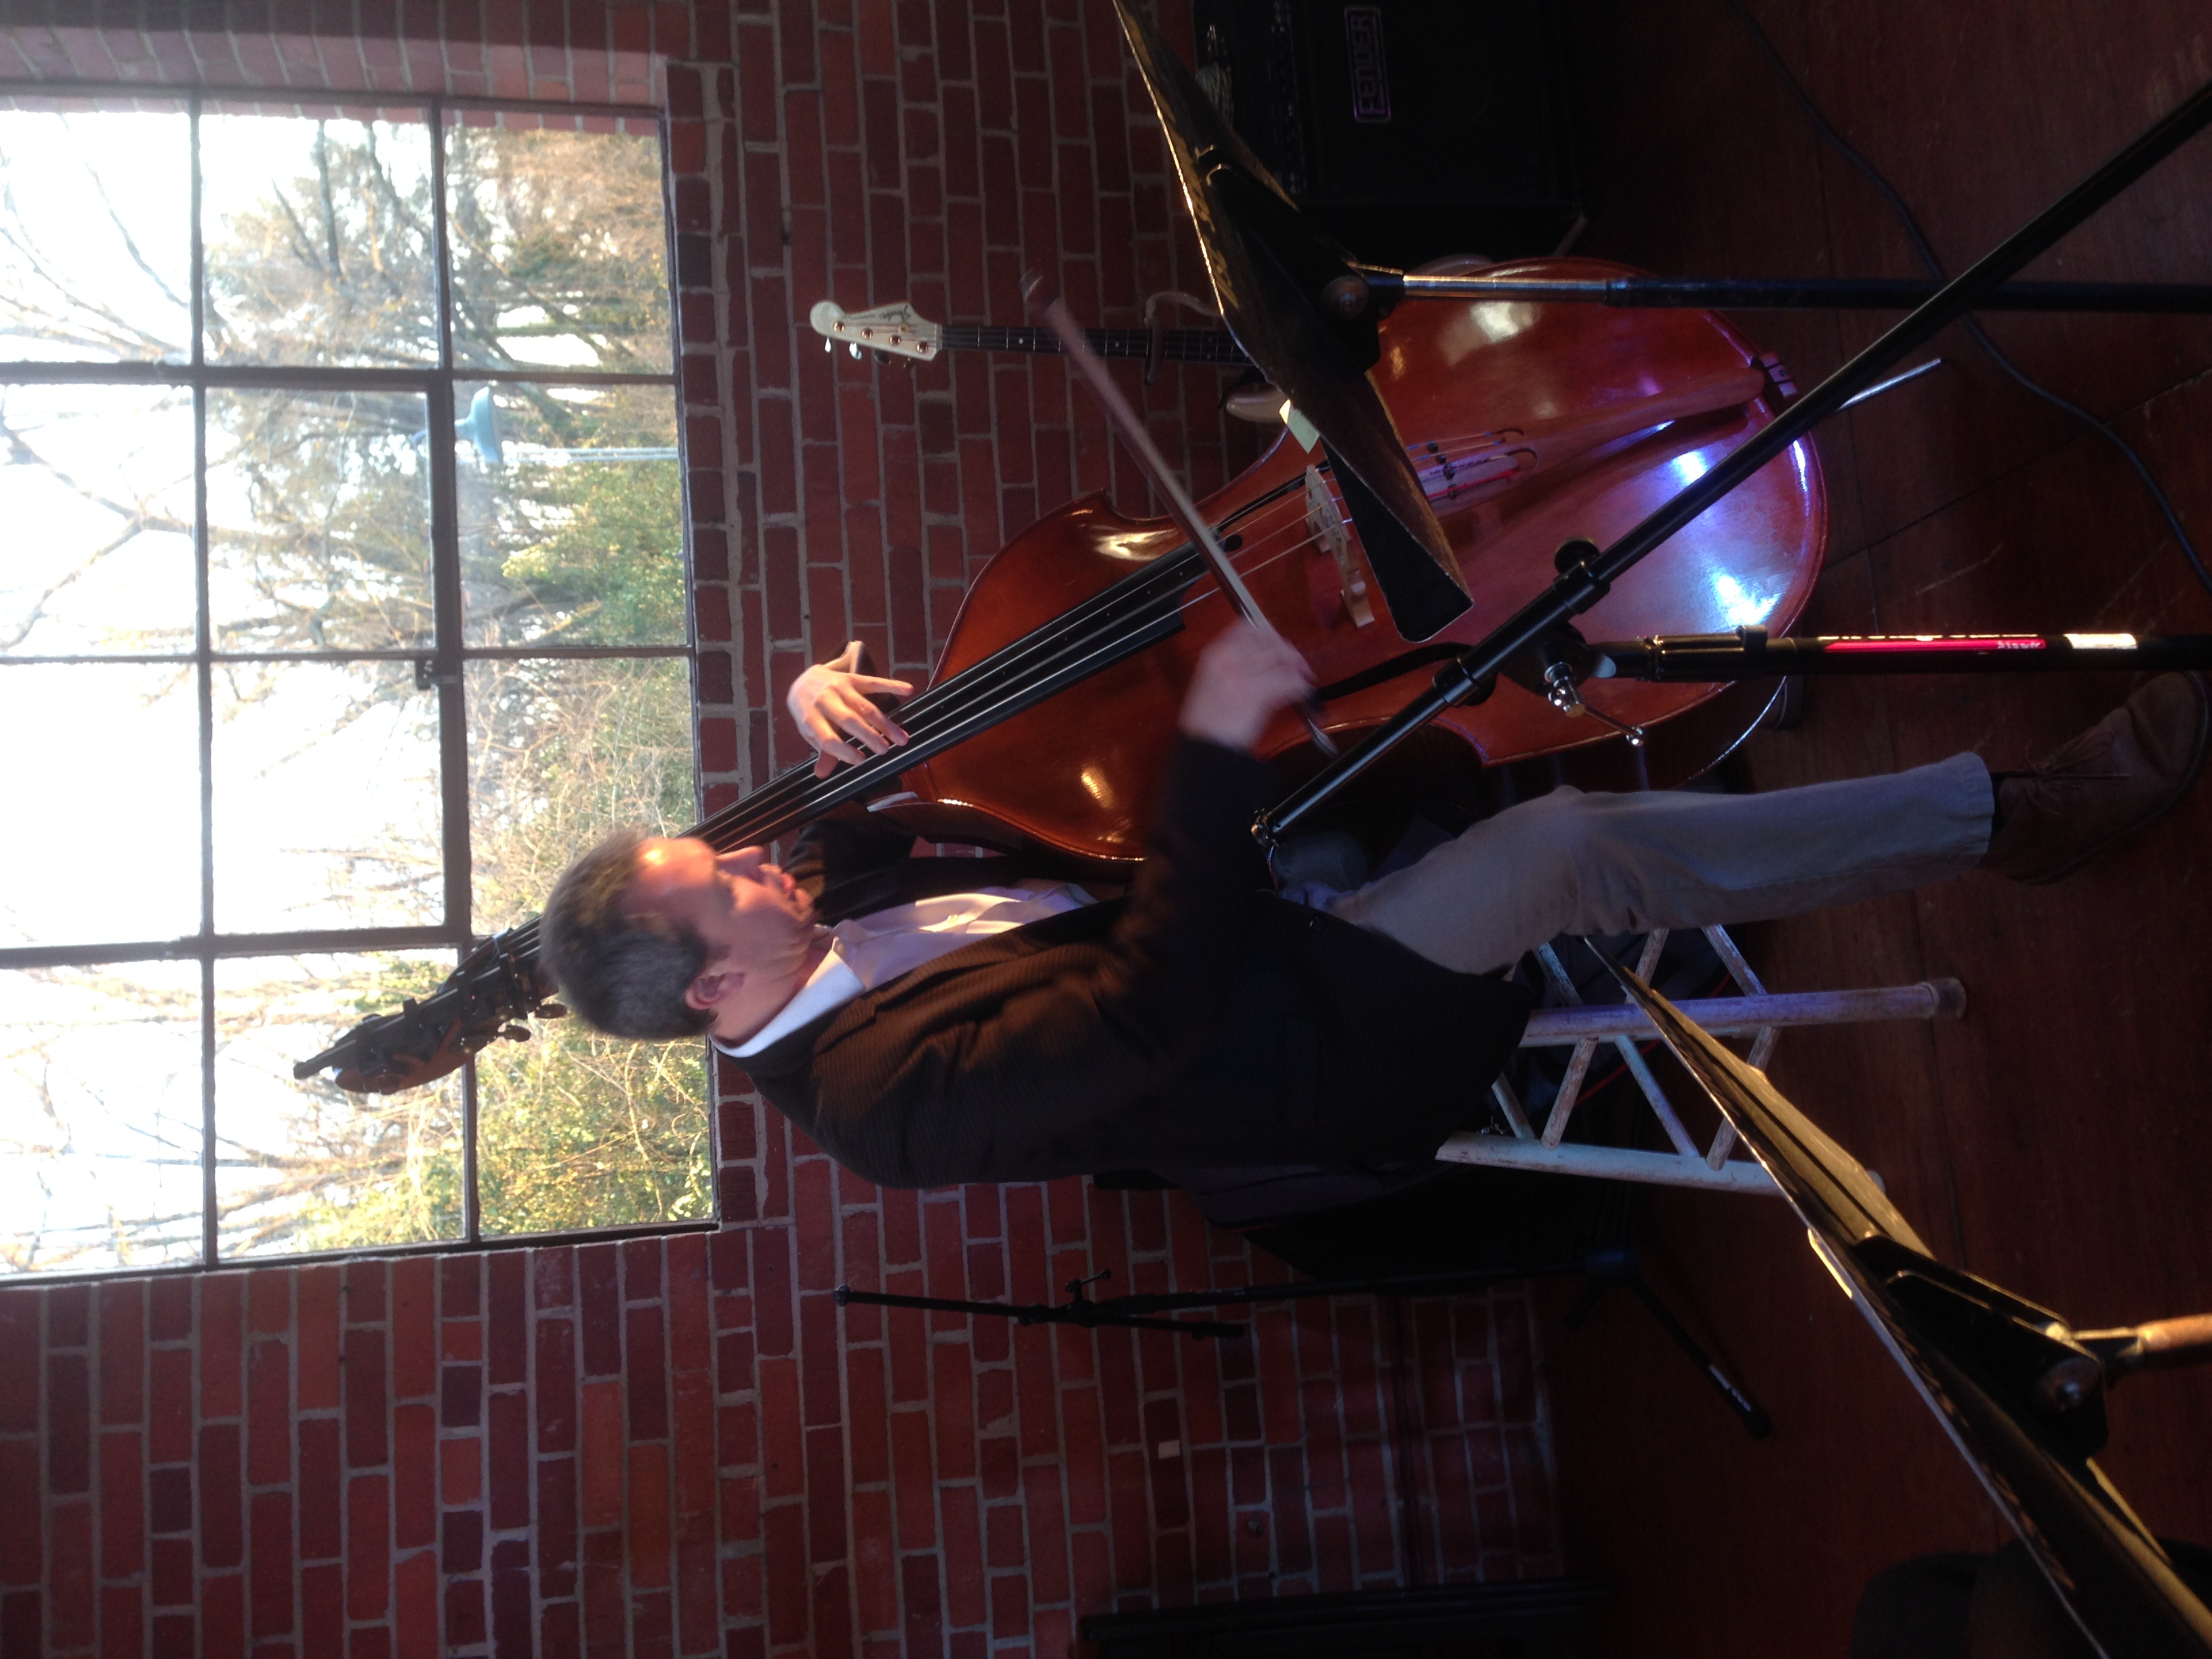 Craig Butterfield rehearsing with Jesse before the gala. It's hard to believe that a double bass can sing the way Craig plays it.